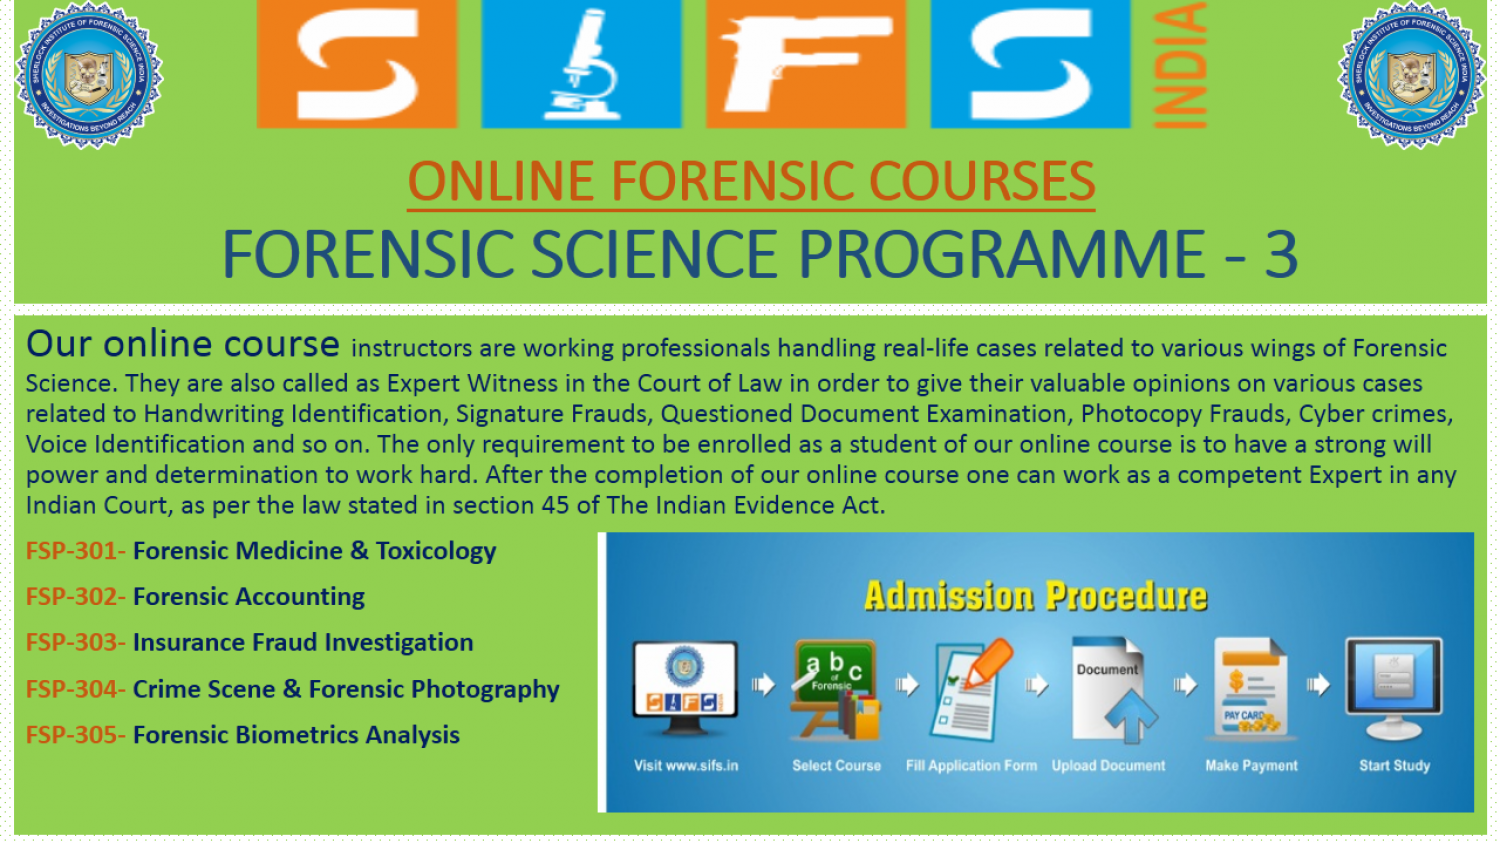 cyber forensics thesis Csc 599 - master's thesis research course description for completion of the masters degree in computer science with an emphasis on digital forensics, it is required that students complete a research project in the area.